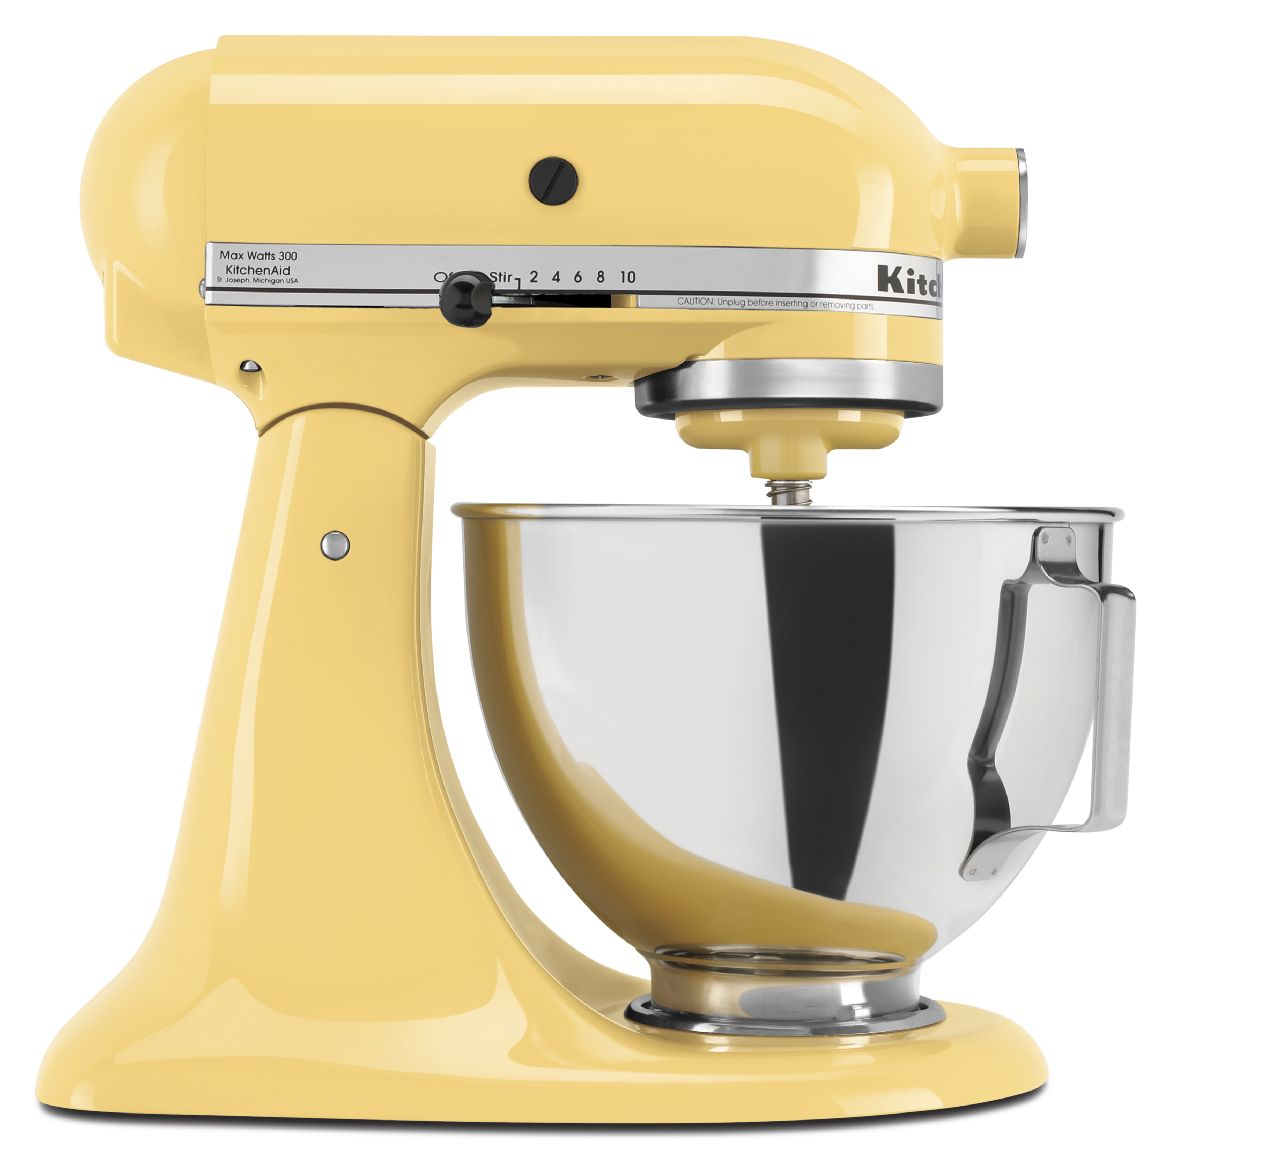 KitchenAid-4-5-quart-Tilt-Head-Stand-Mixer-w-bowl-with-handle